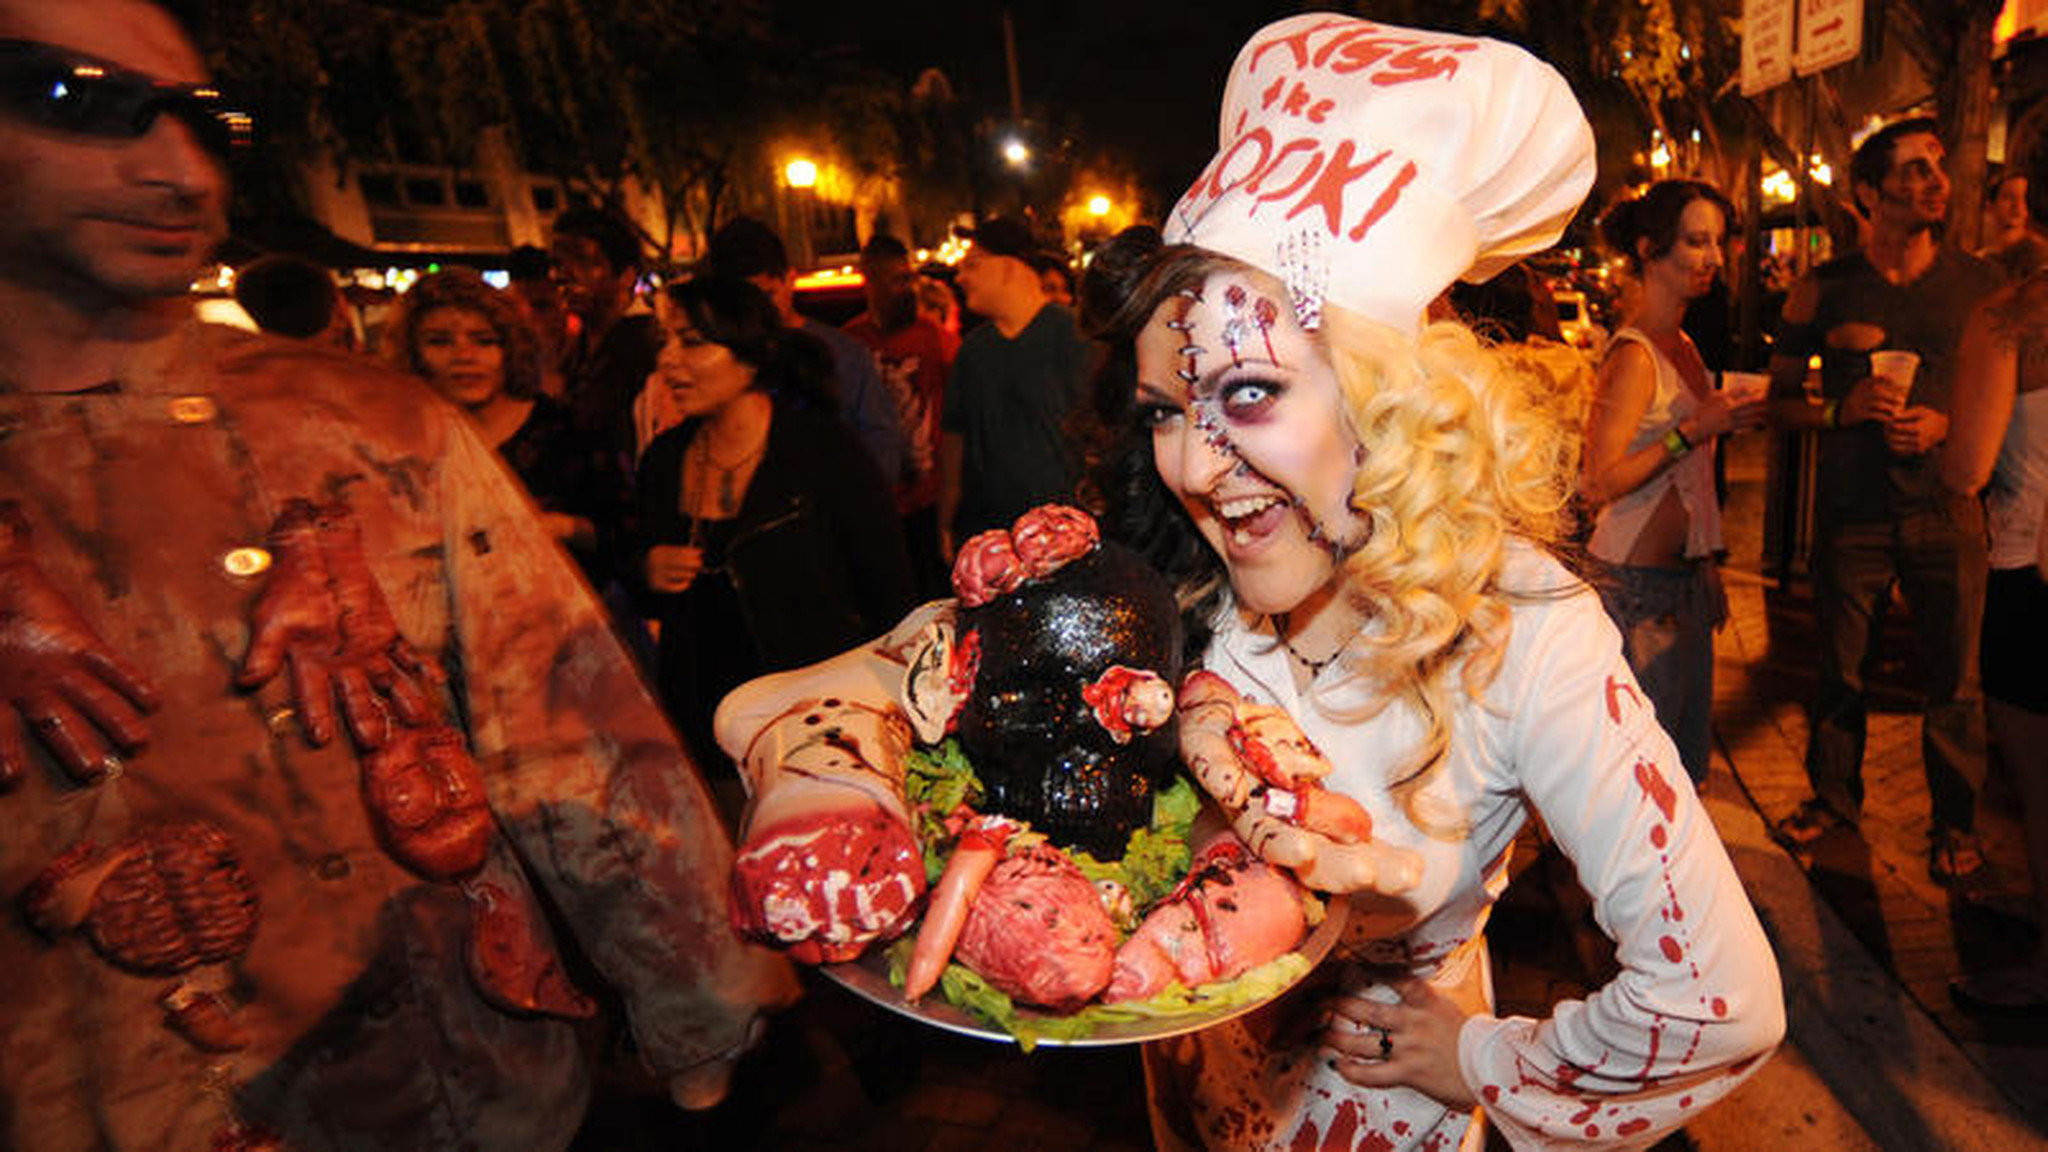 12 reasons to freak out over halloween in south florida - sun sentinel